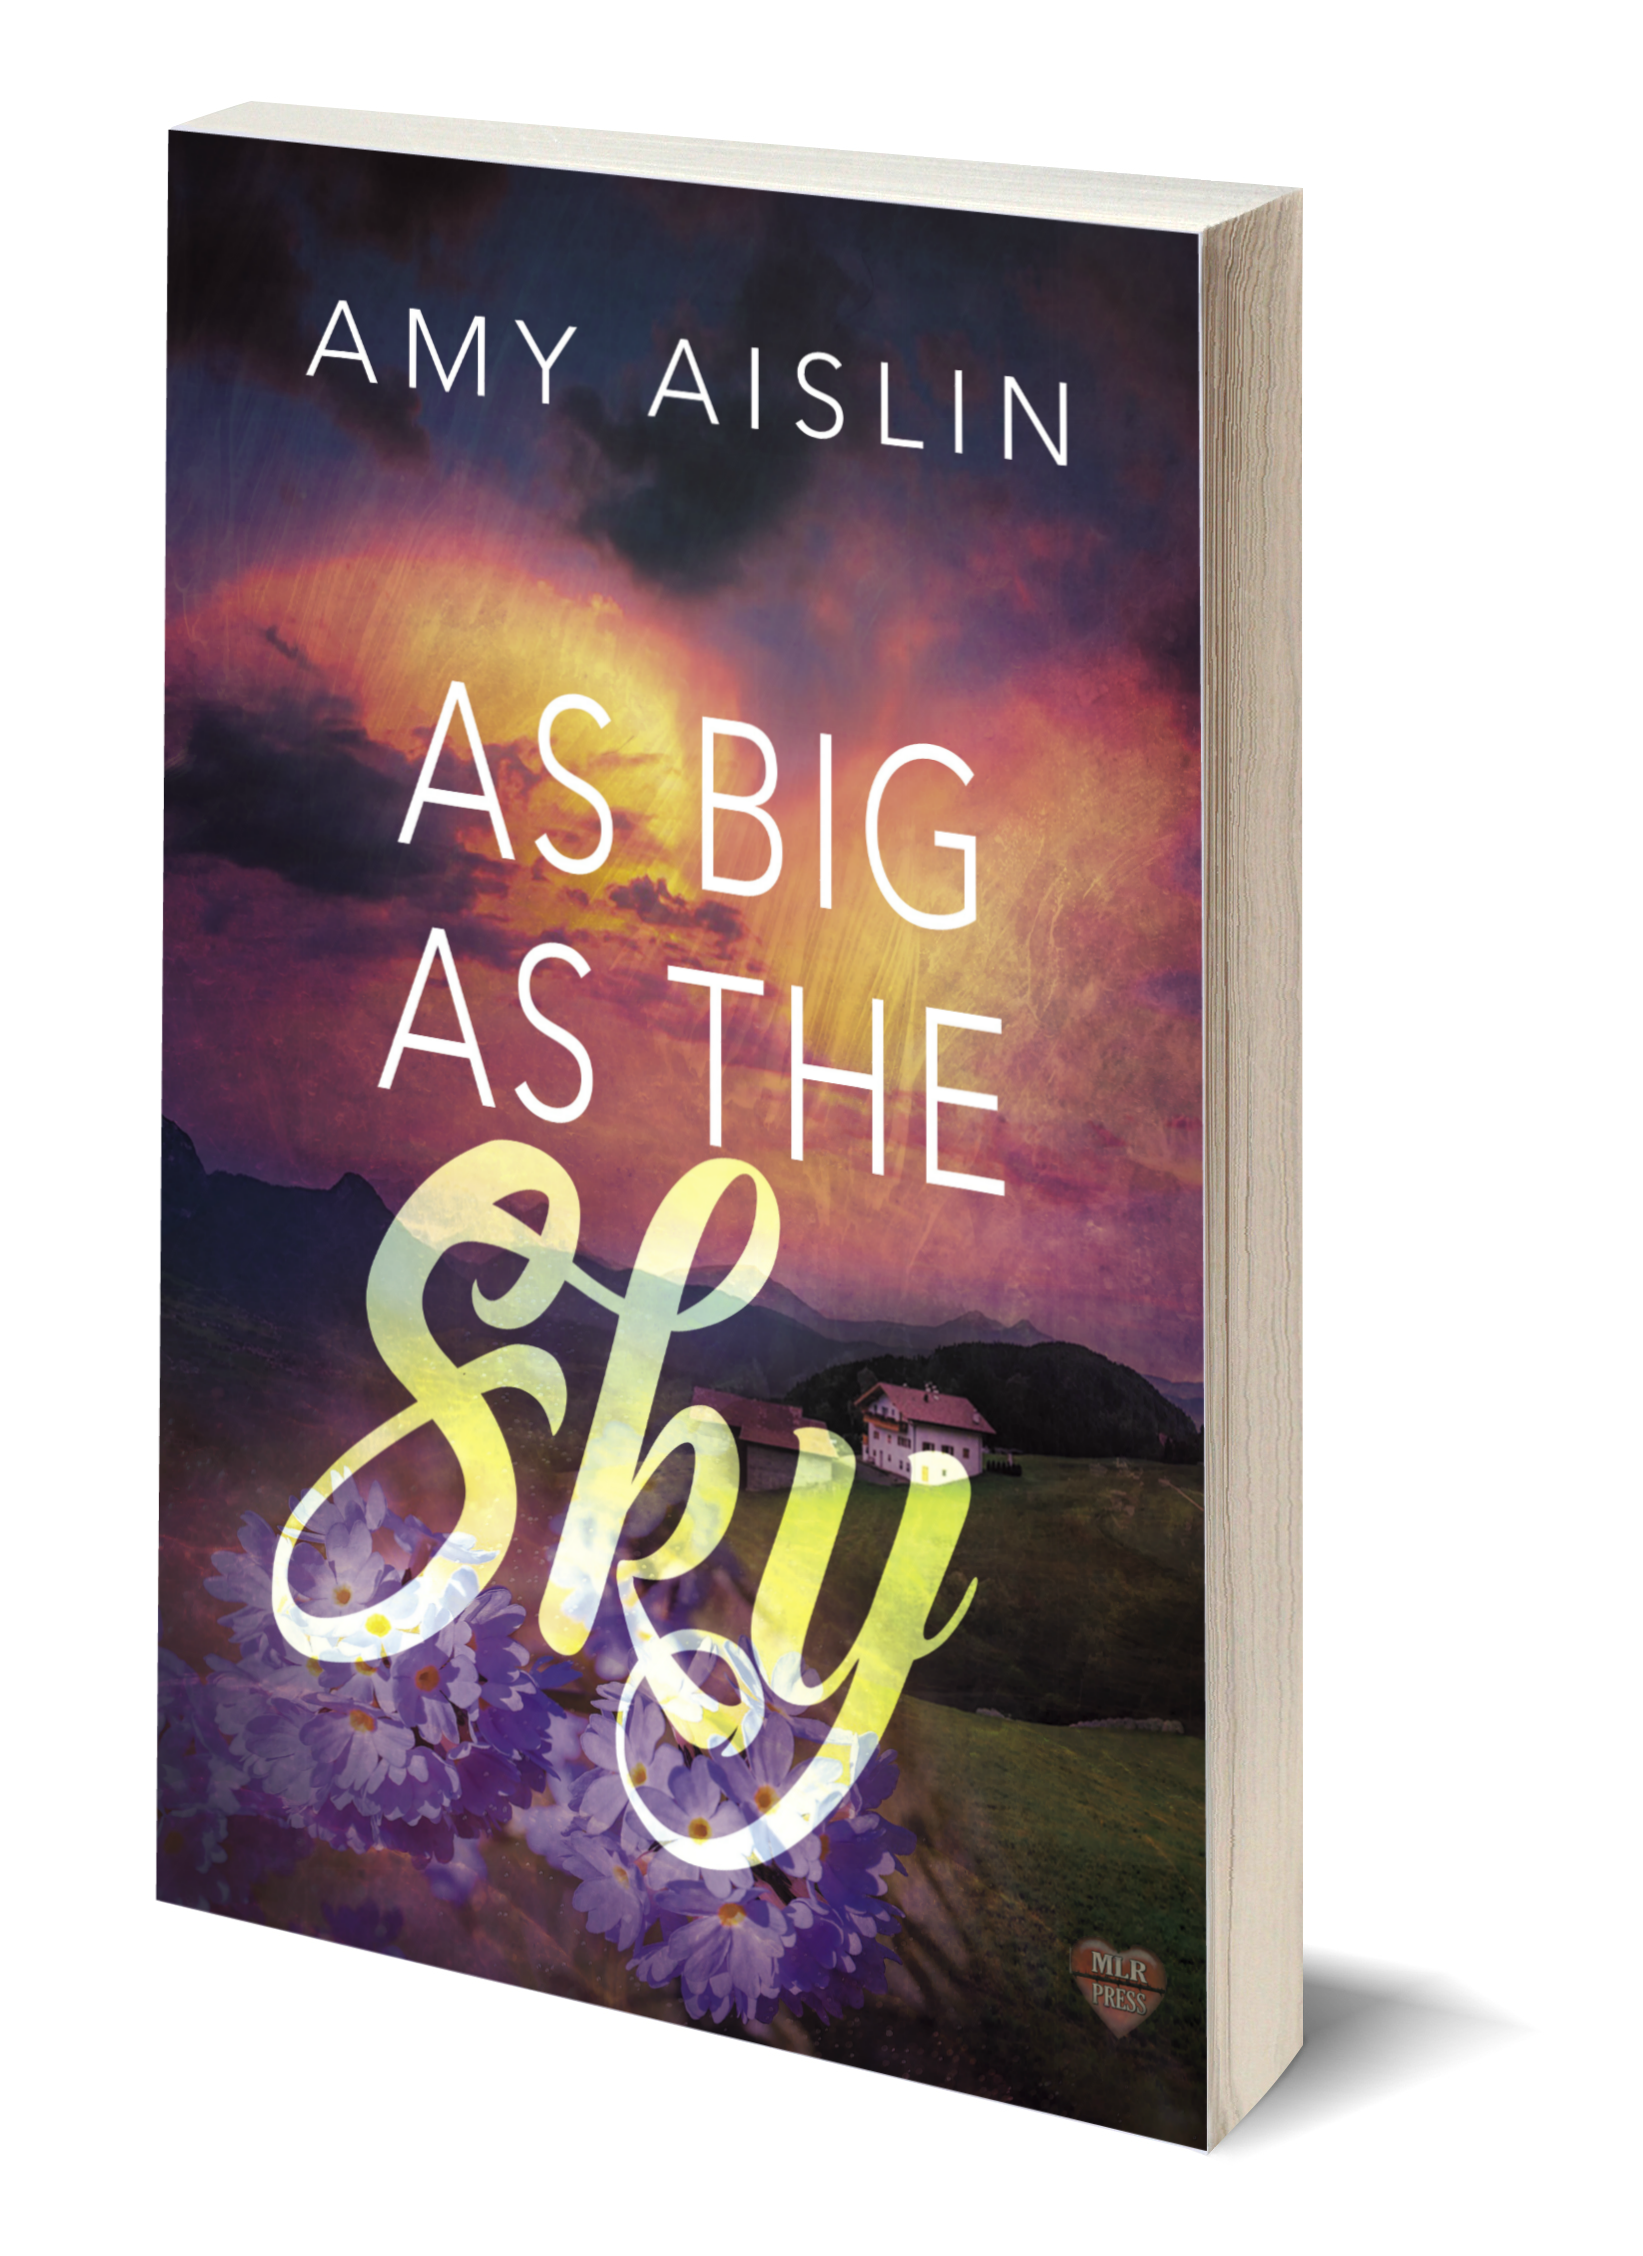 As Big As the Sky_3D Cover